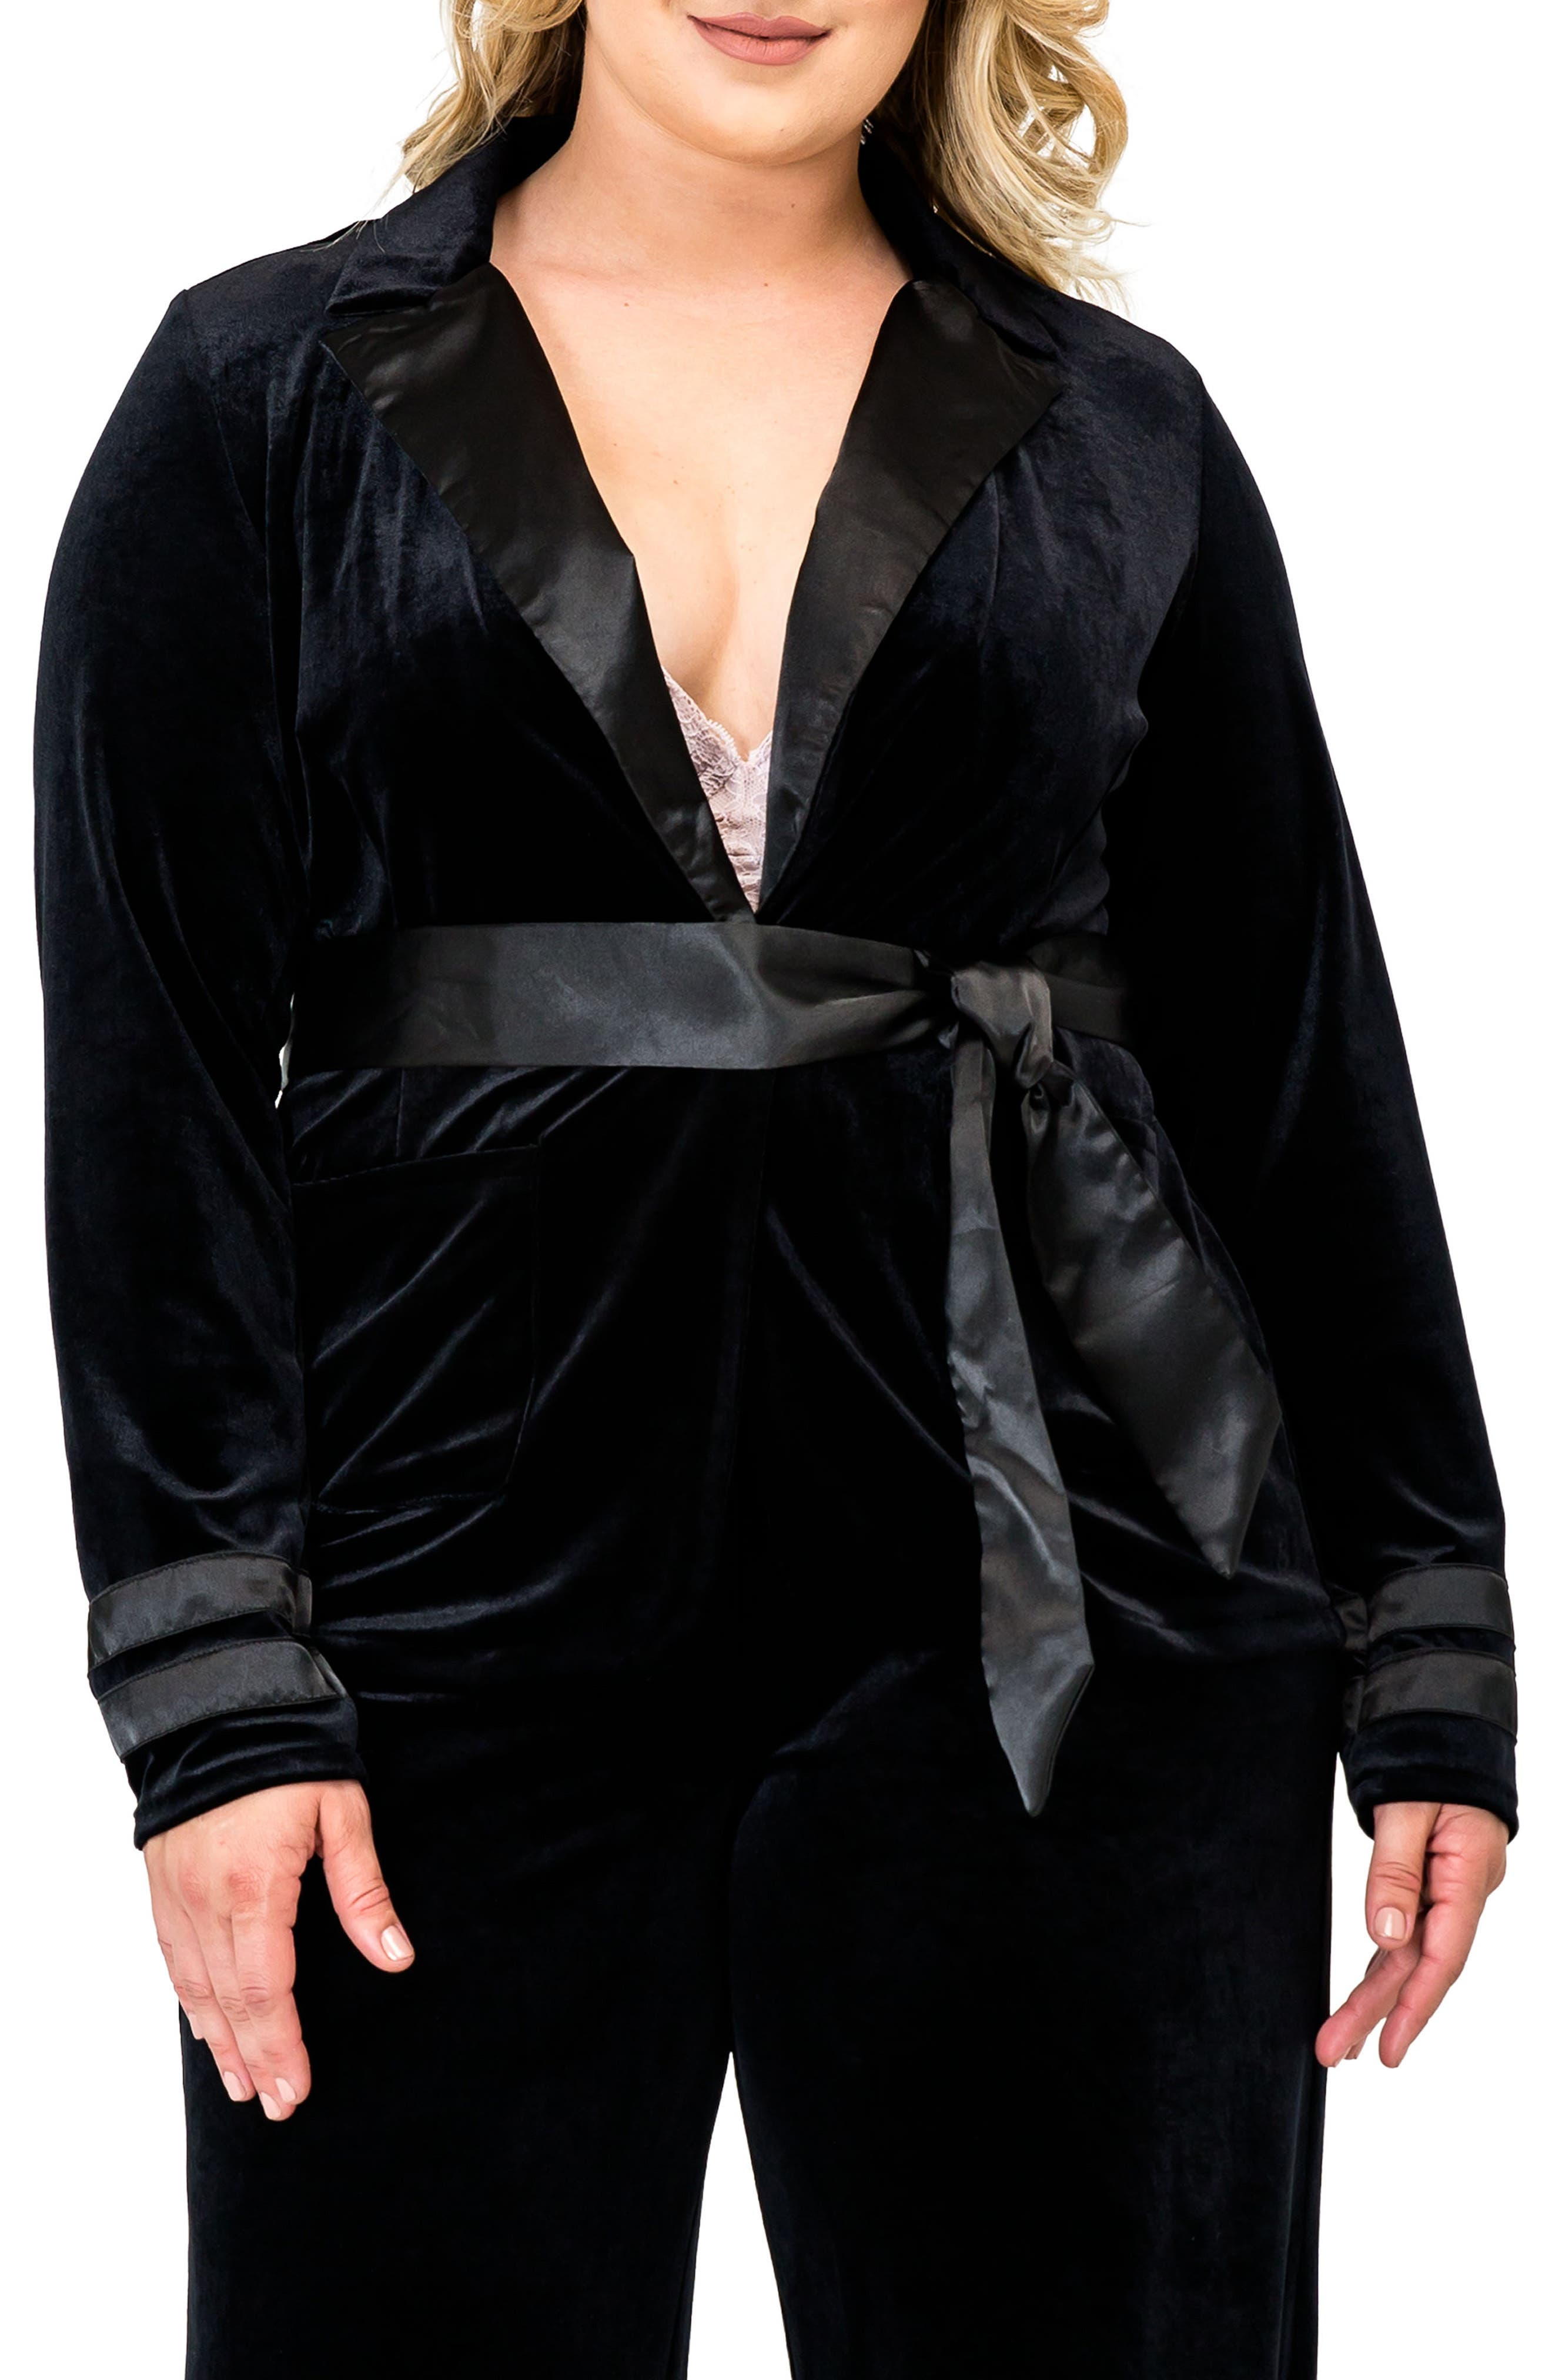 Lottie Velvet & Satin Jacket,                         Main,                         color, BLACK